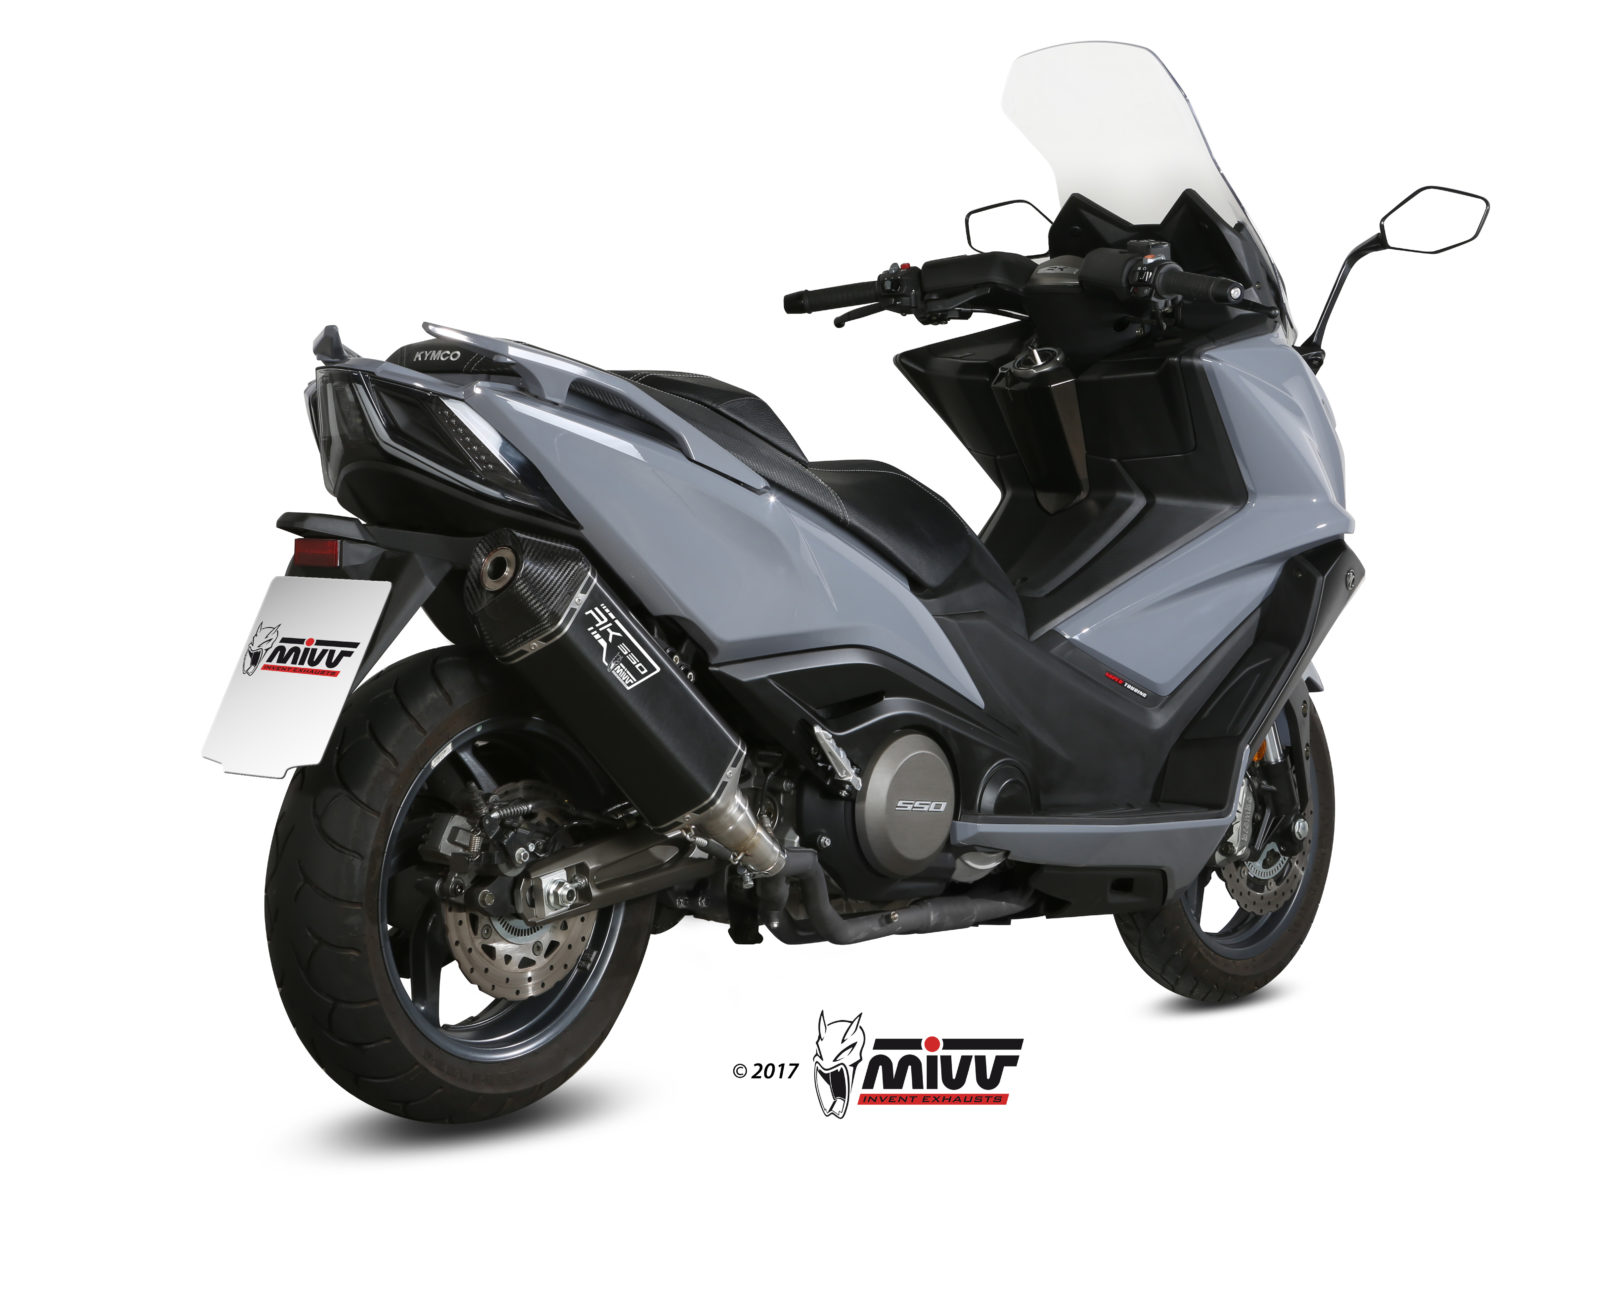 KYMCO AK 550 Exhaust Mivv Speed Edge Black stainless steel O.008.LRB